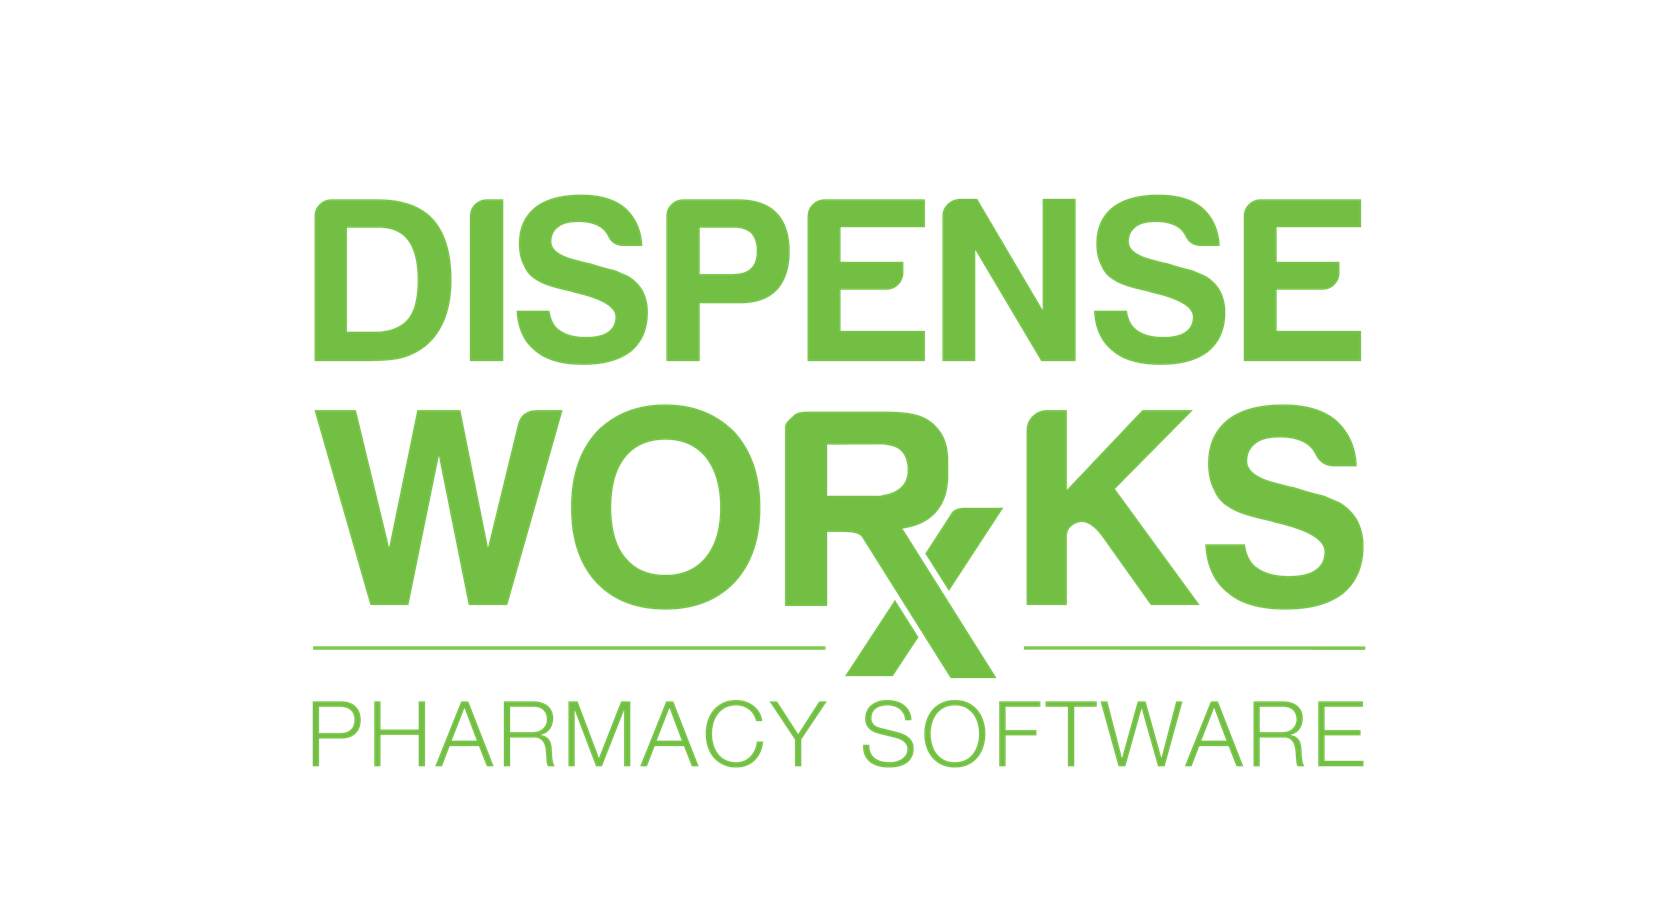 Dispense Works